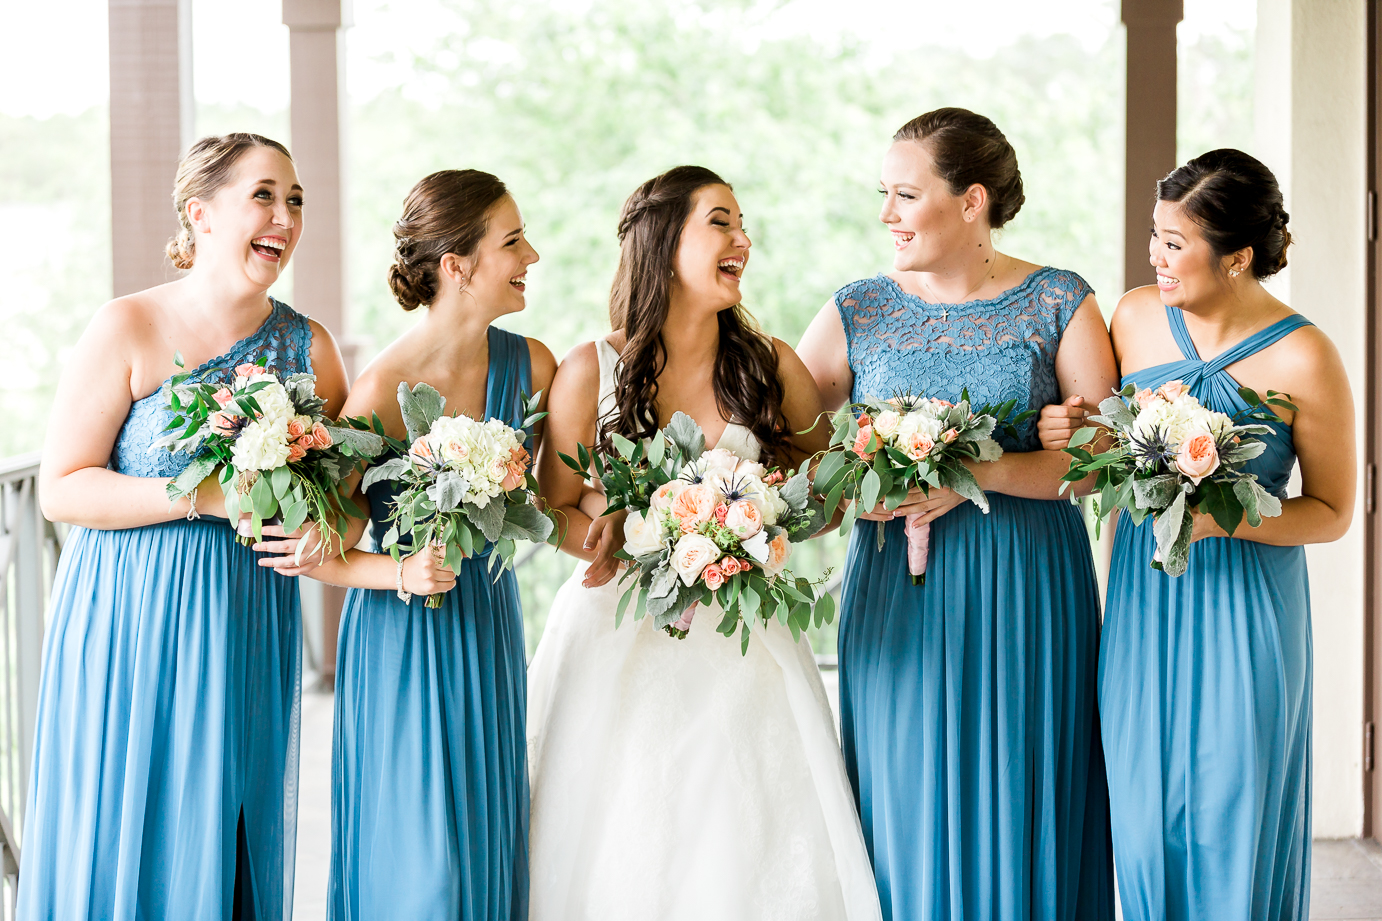 Bride and bridesmaids picture ideas. Nocatee Crosswater Hall